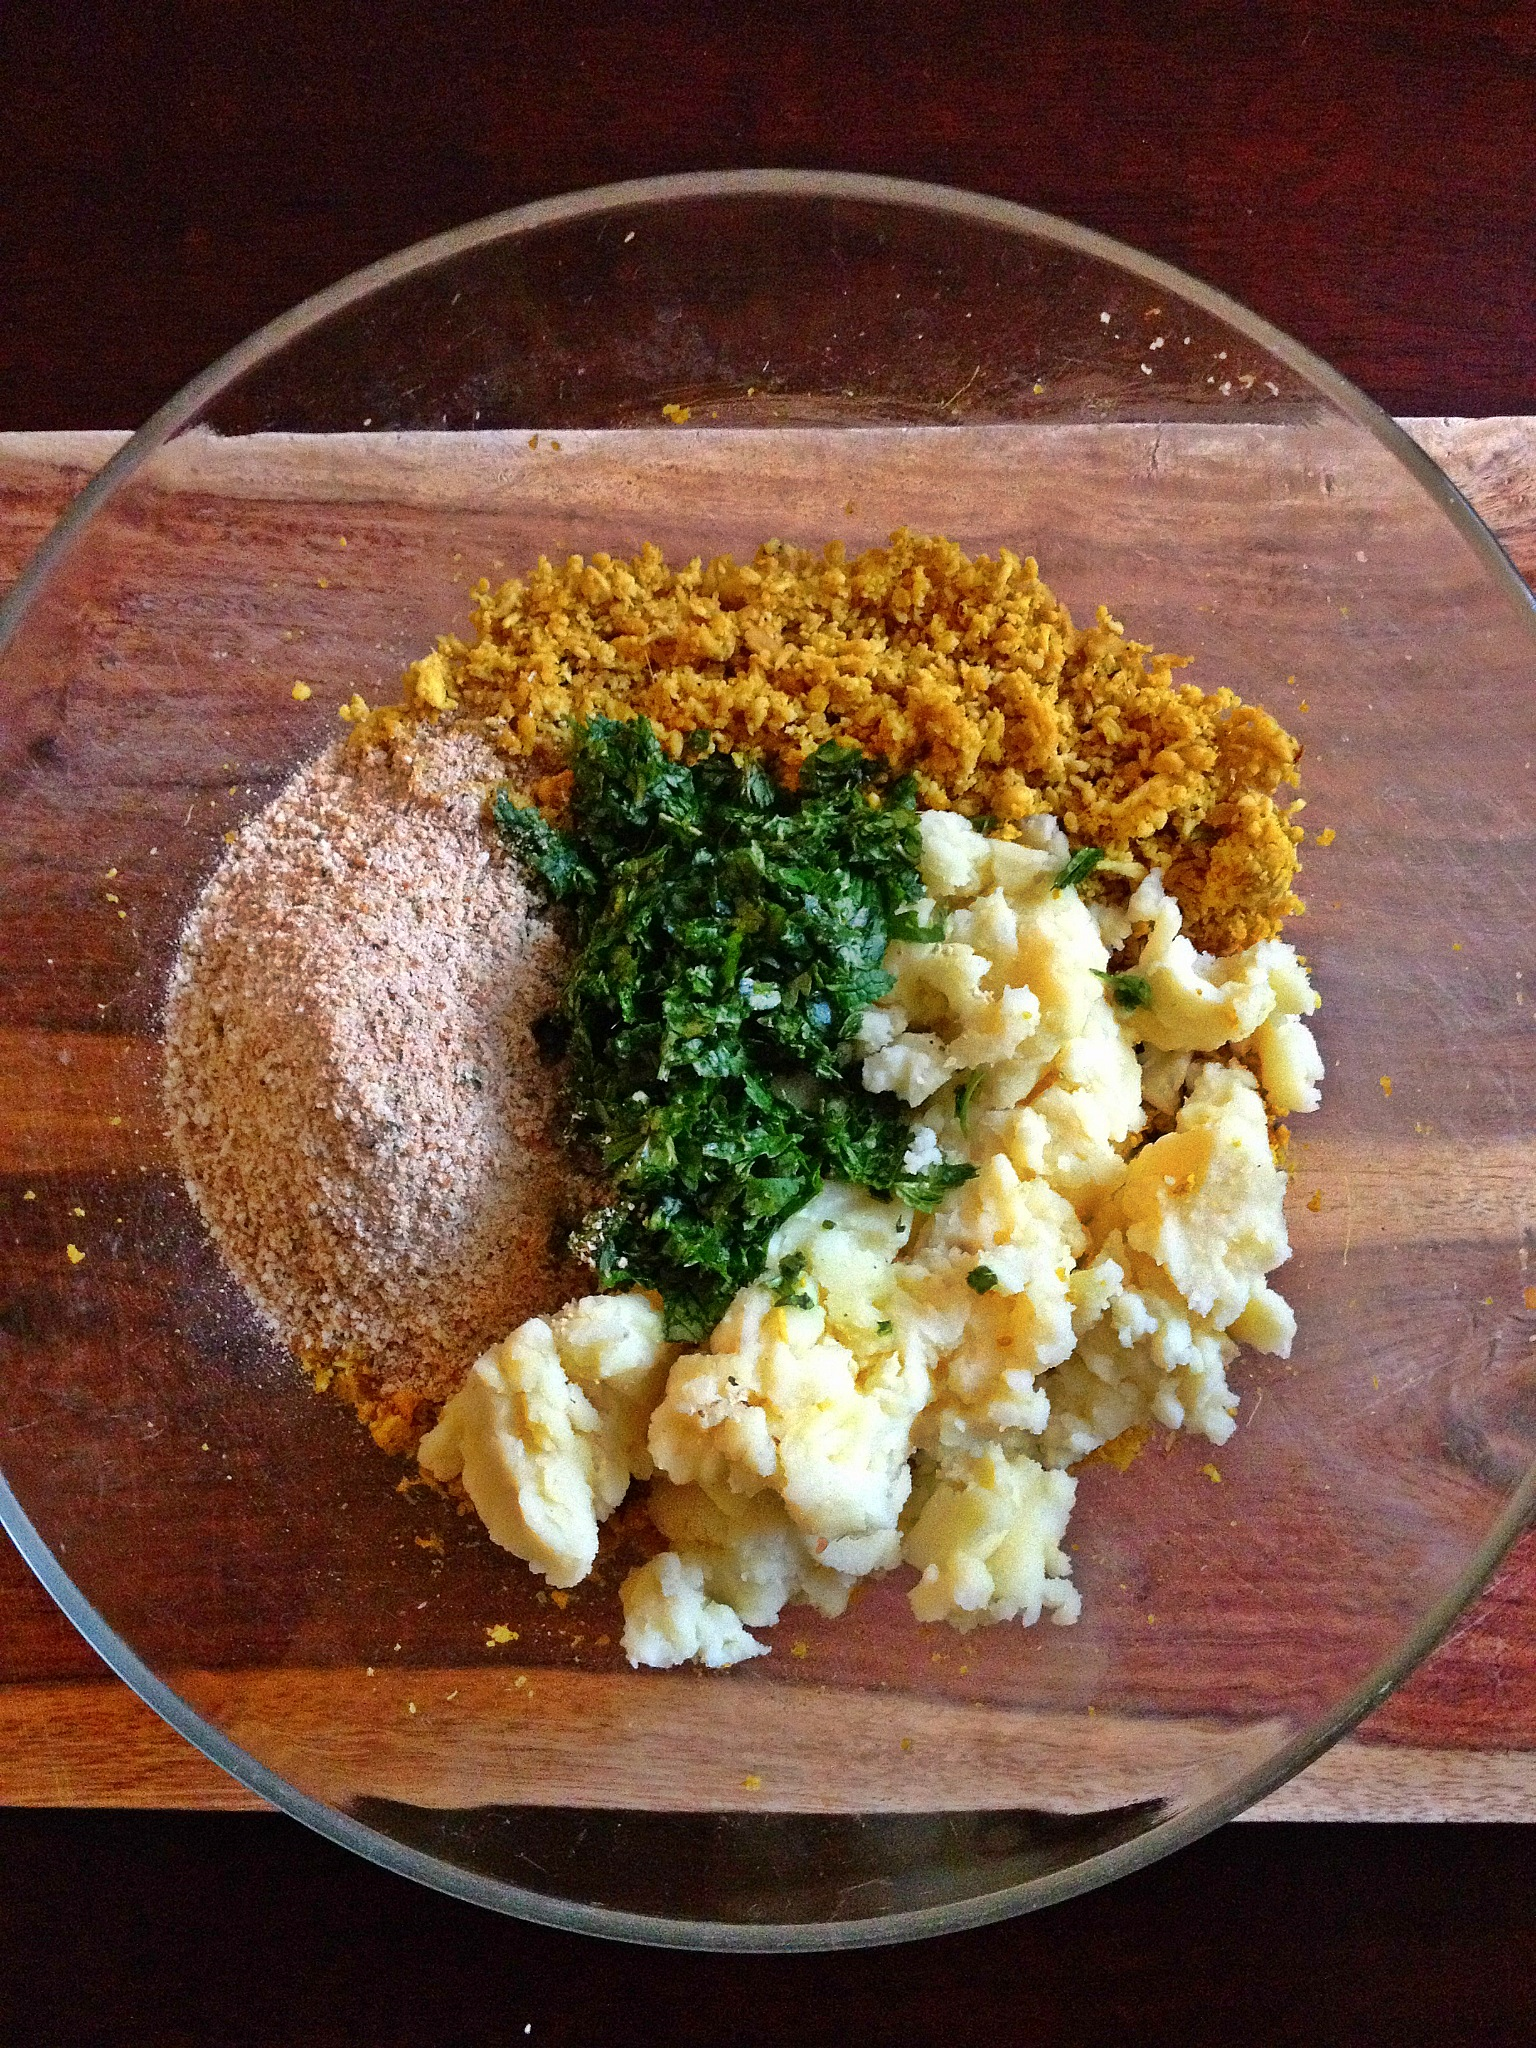 Breadcrumbs, cilantro, mint and lemon juice for leftover Thanksgiving turkey cutlets